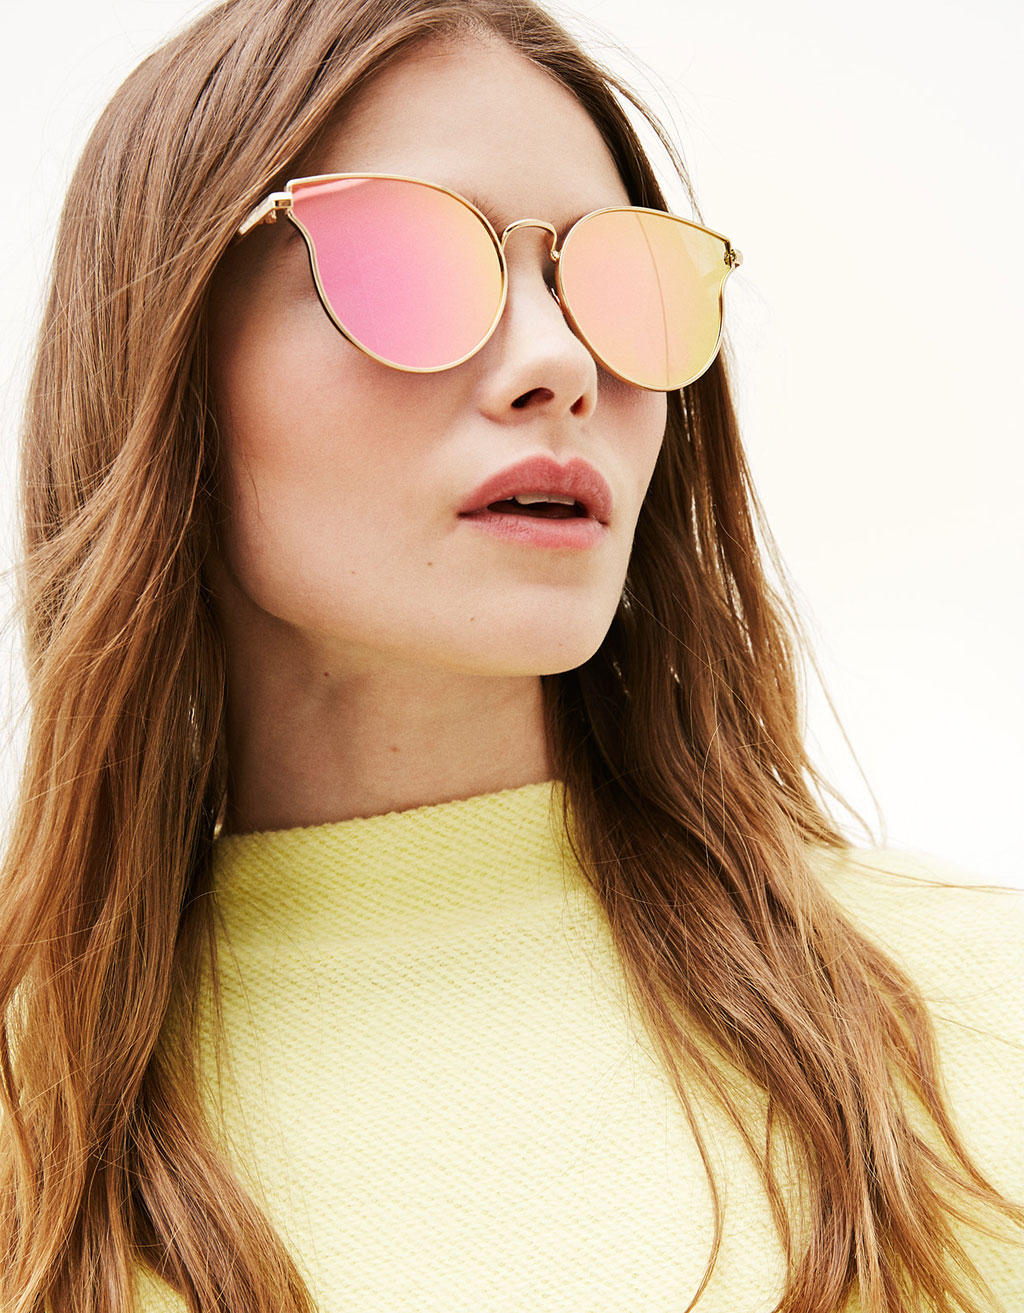 Cateye mirrored sunglasses